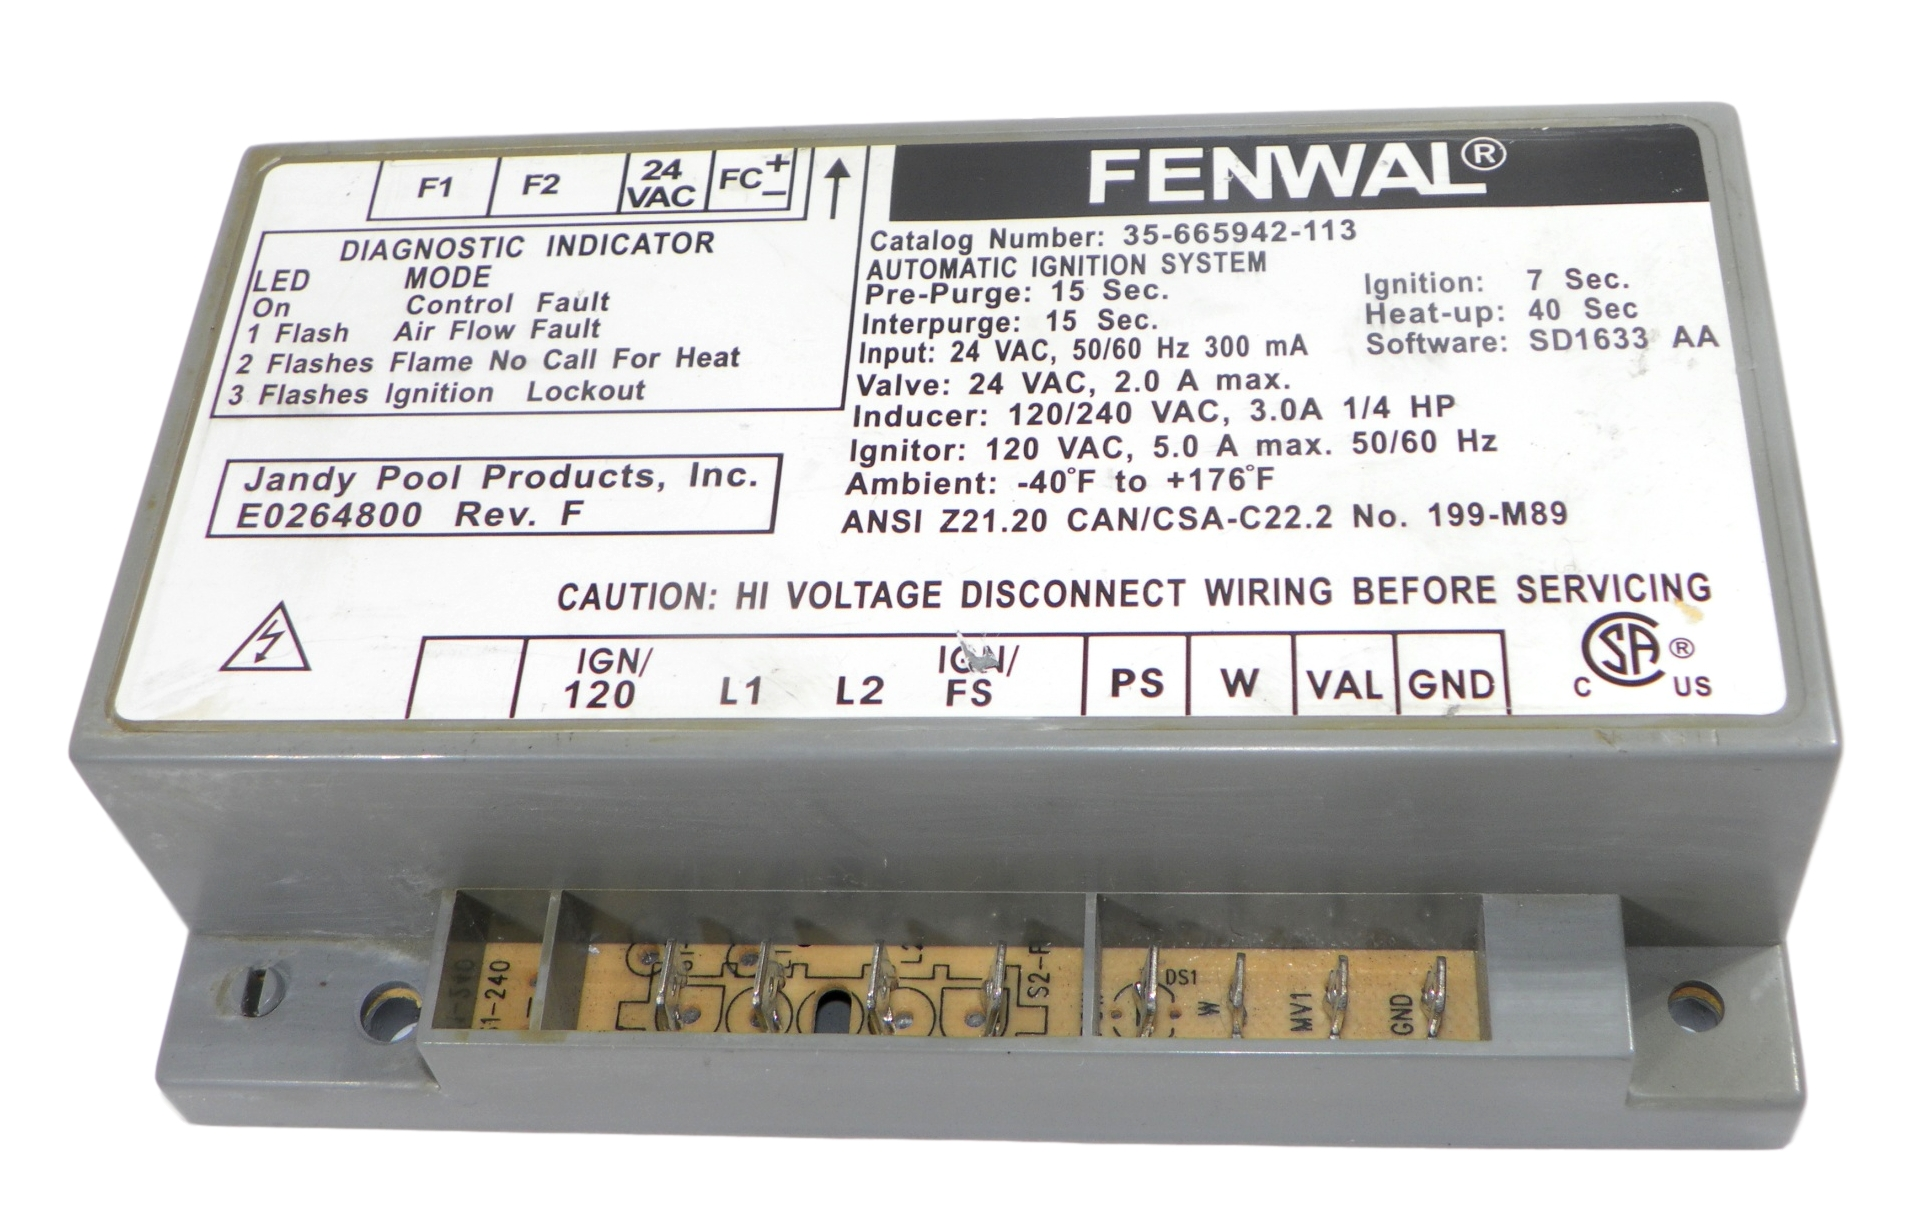 Fenwal Jandy R0456900 35 665942 113 Ignition Control E0264800 Revf 120vac Disconnect Wiring Responsive Image